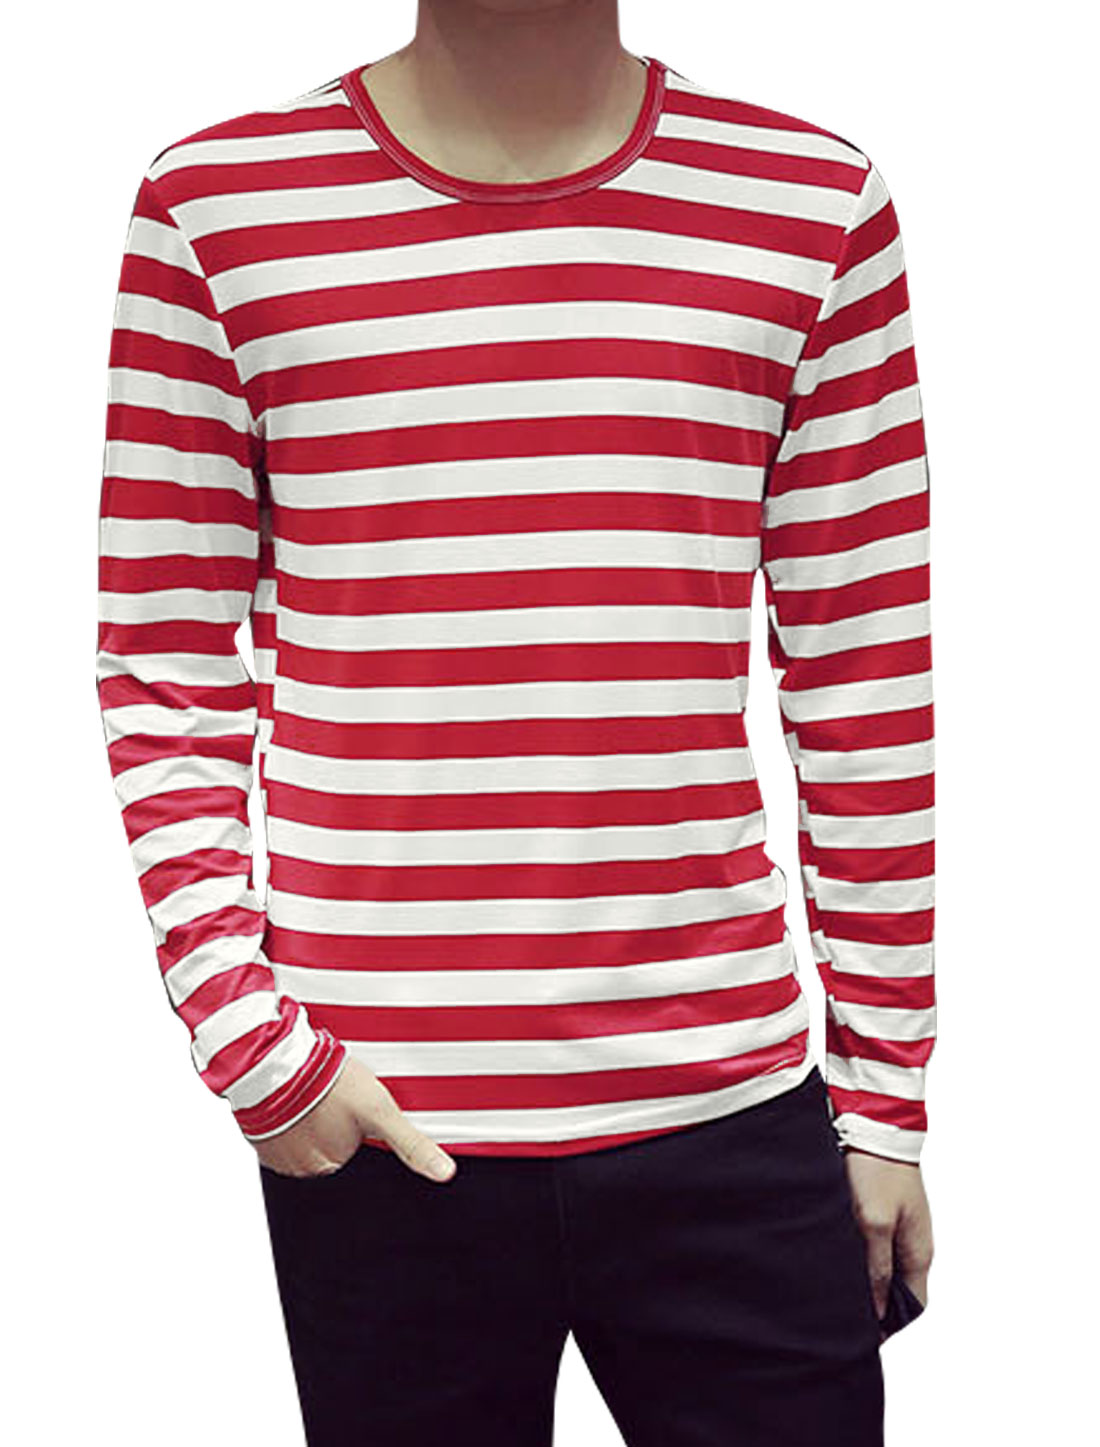 Men Long Sleeves Round Neck Stripes Slim Fit Tee Shirt Red L